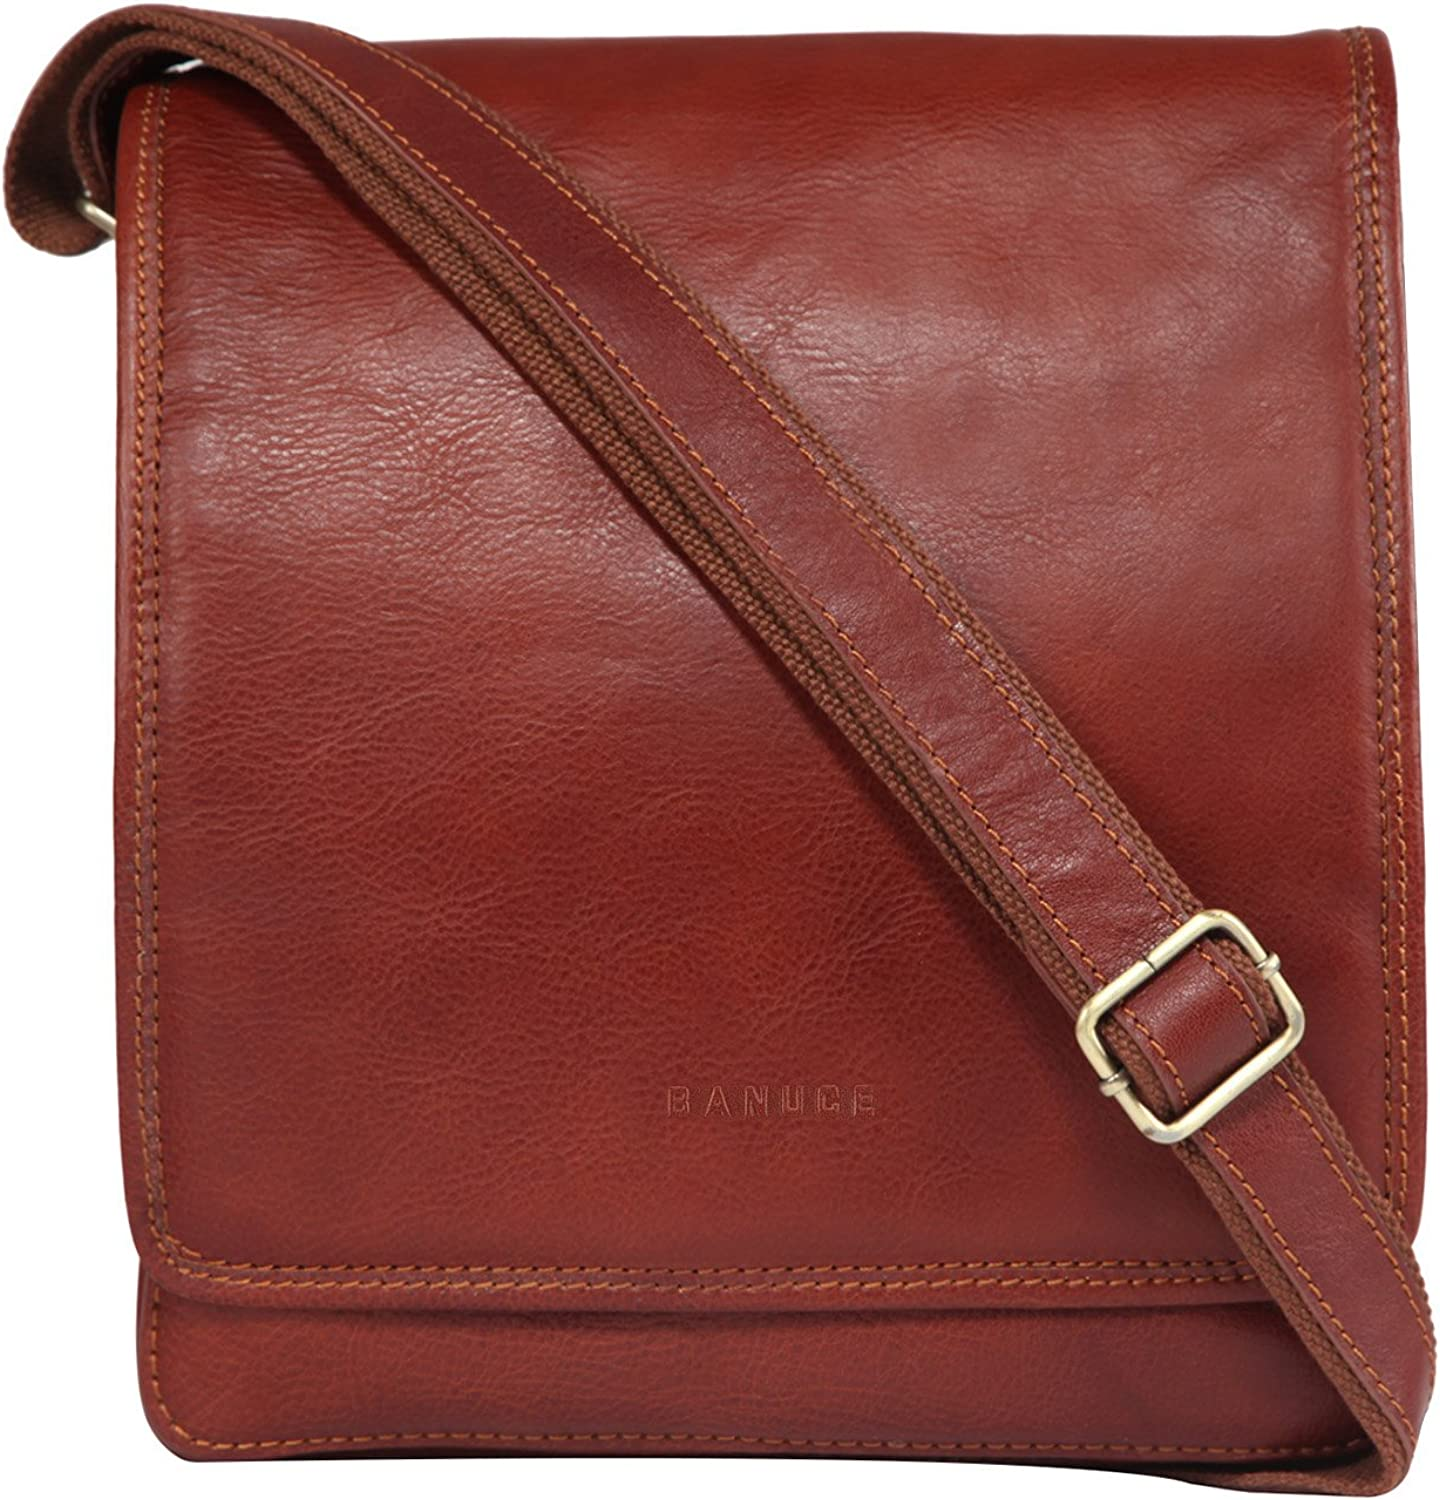 Banuce Small Full Grains Italian Leather Messenger Bag